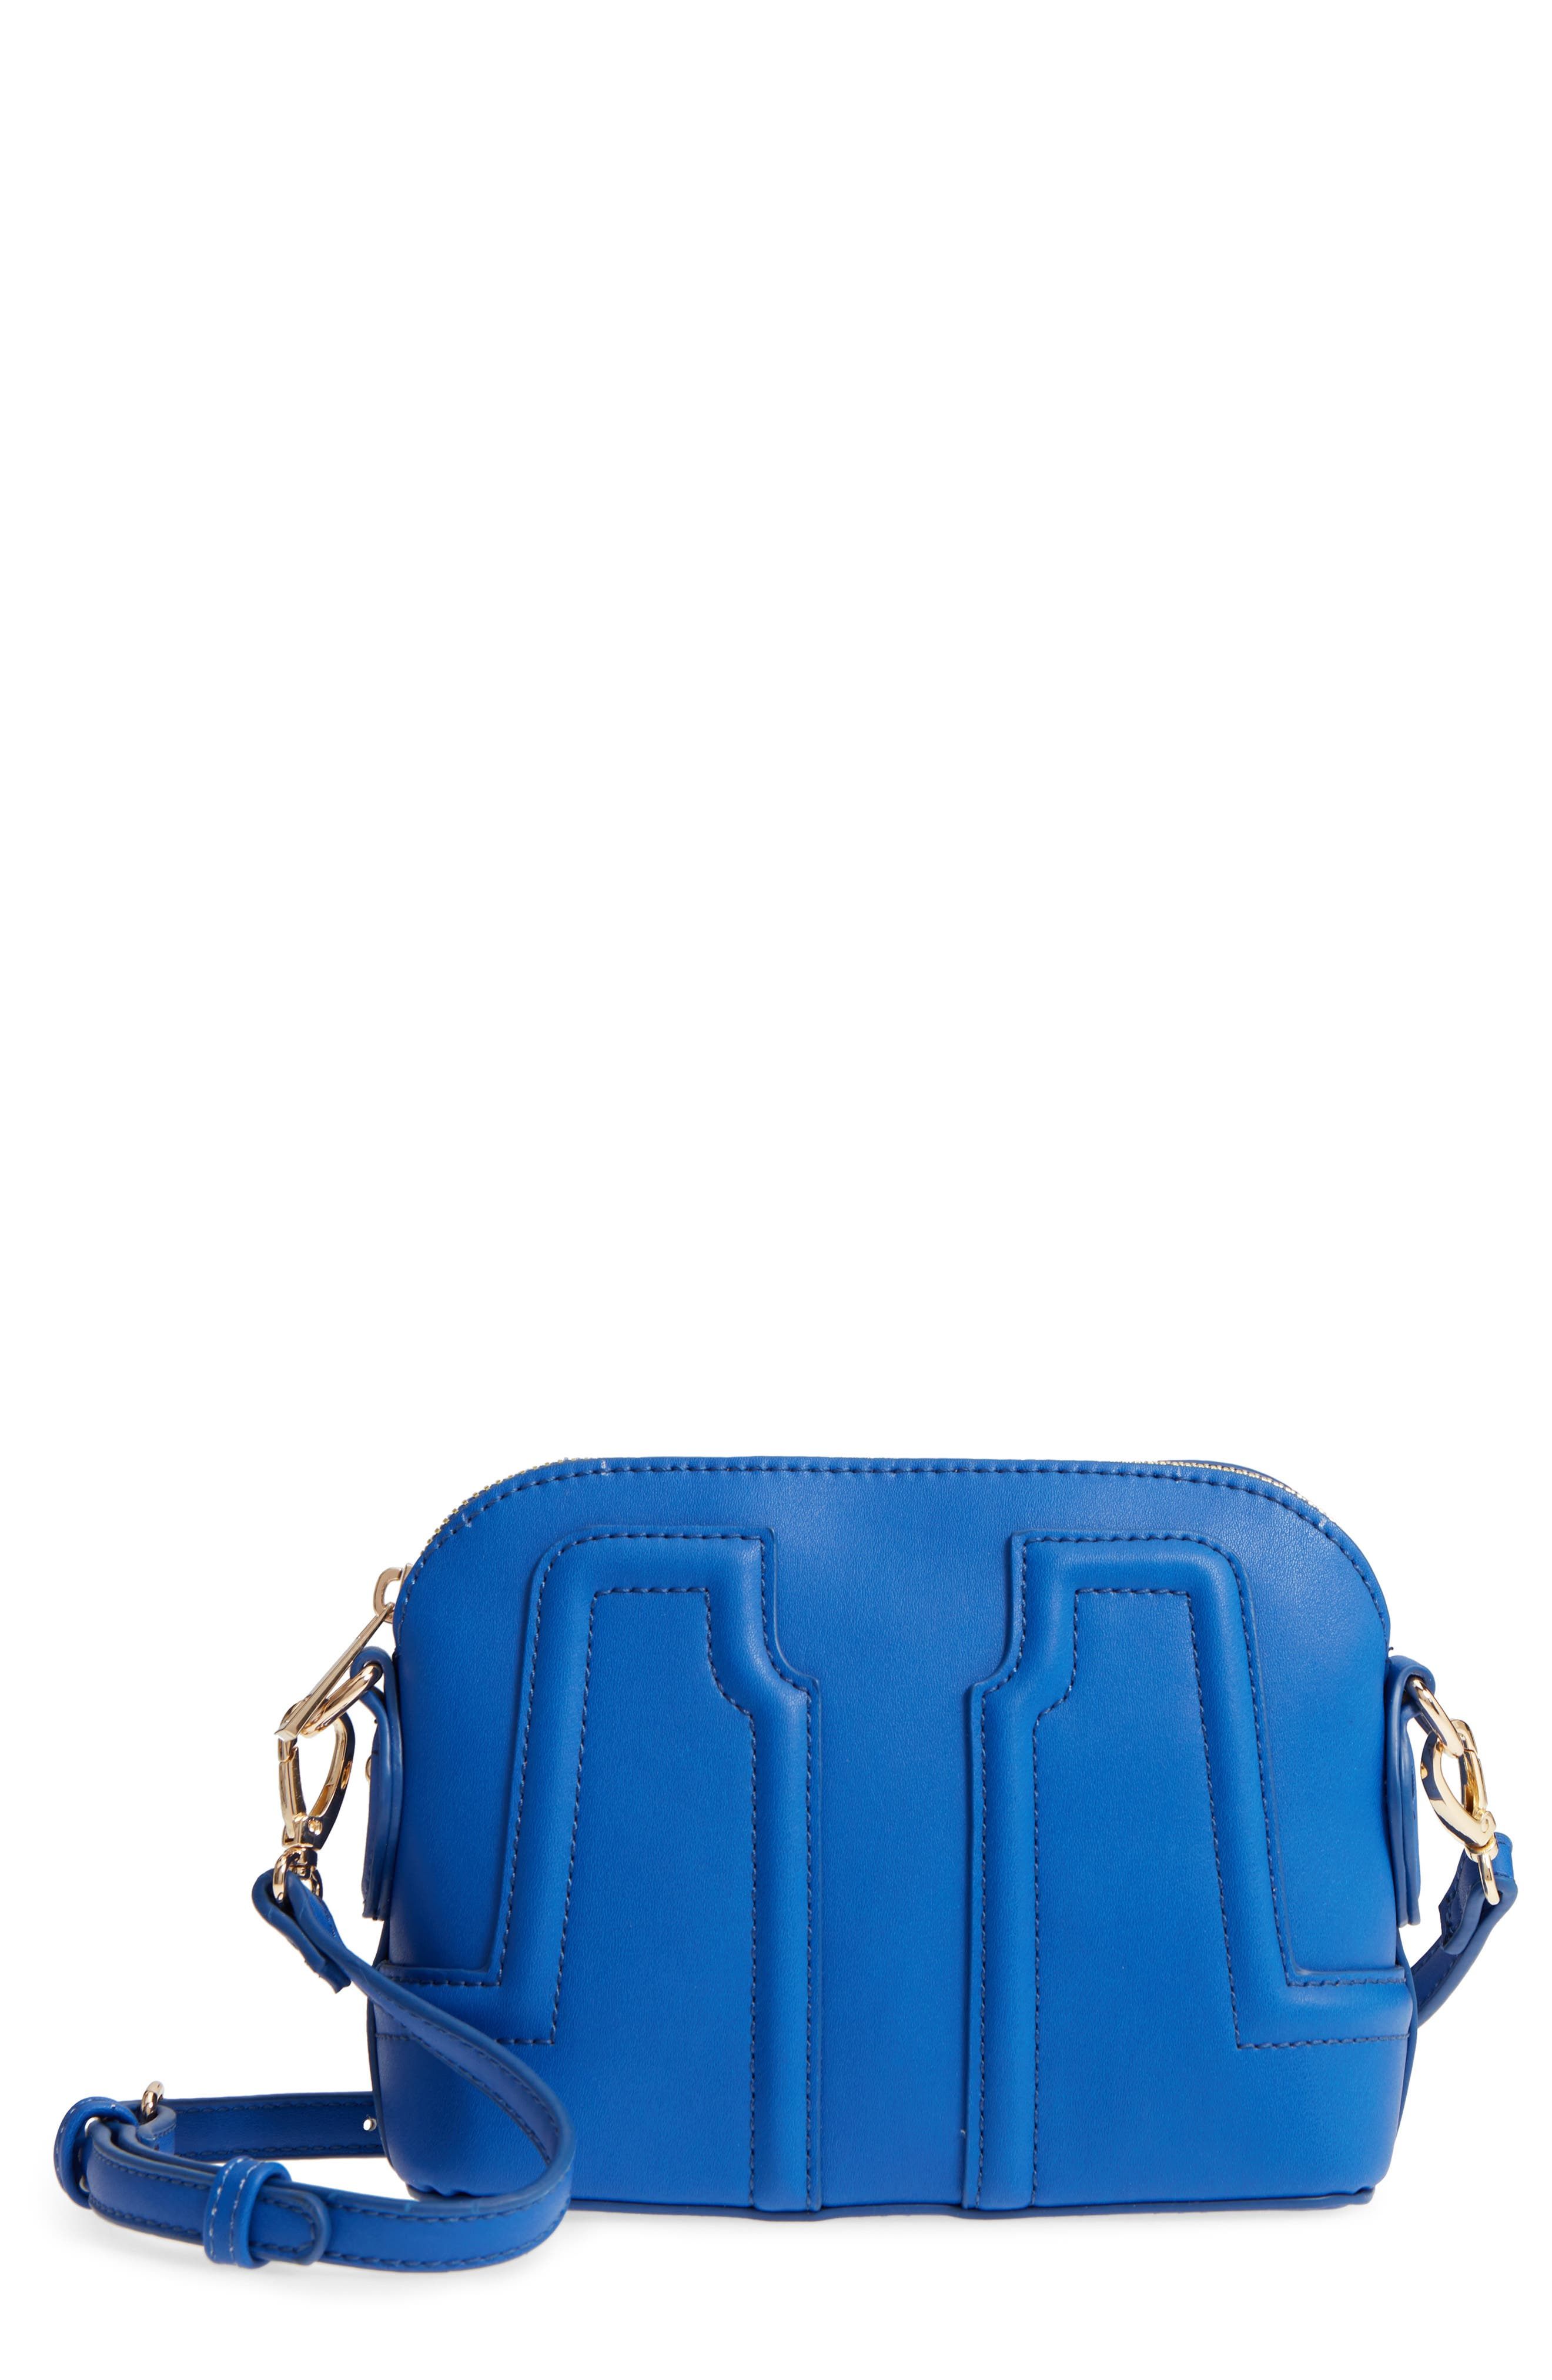 Alternate Image 1 Selected - Sole Society Structured Faux Leather Dome Crossbody